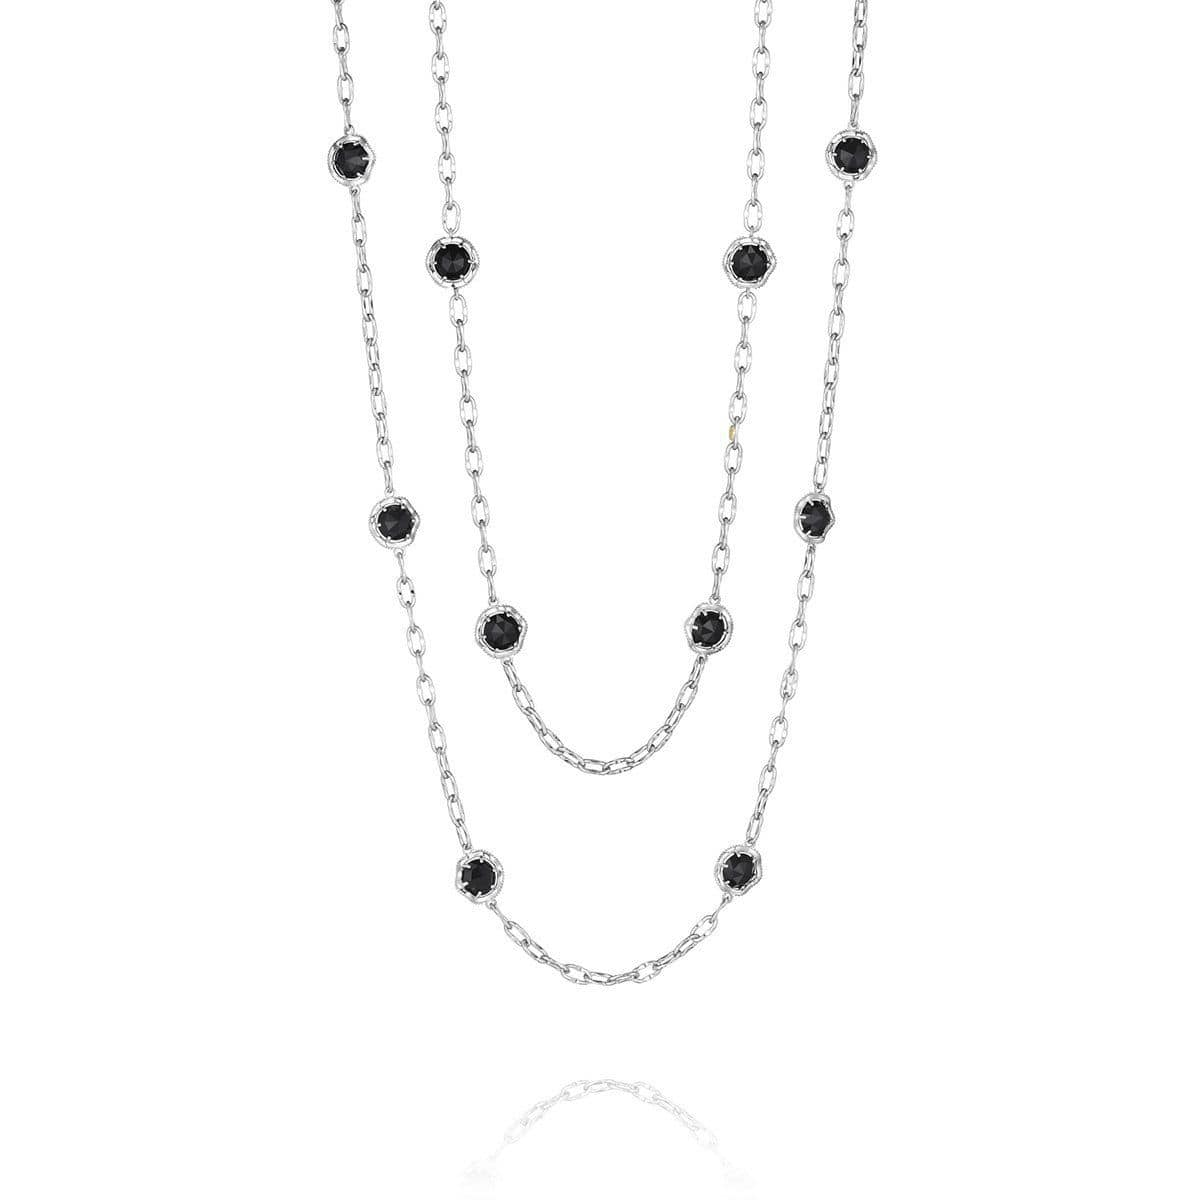 Silver Black Onyx Medley Necklace - SN10819-Tacori-Renee Taylor Gallery